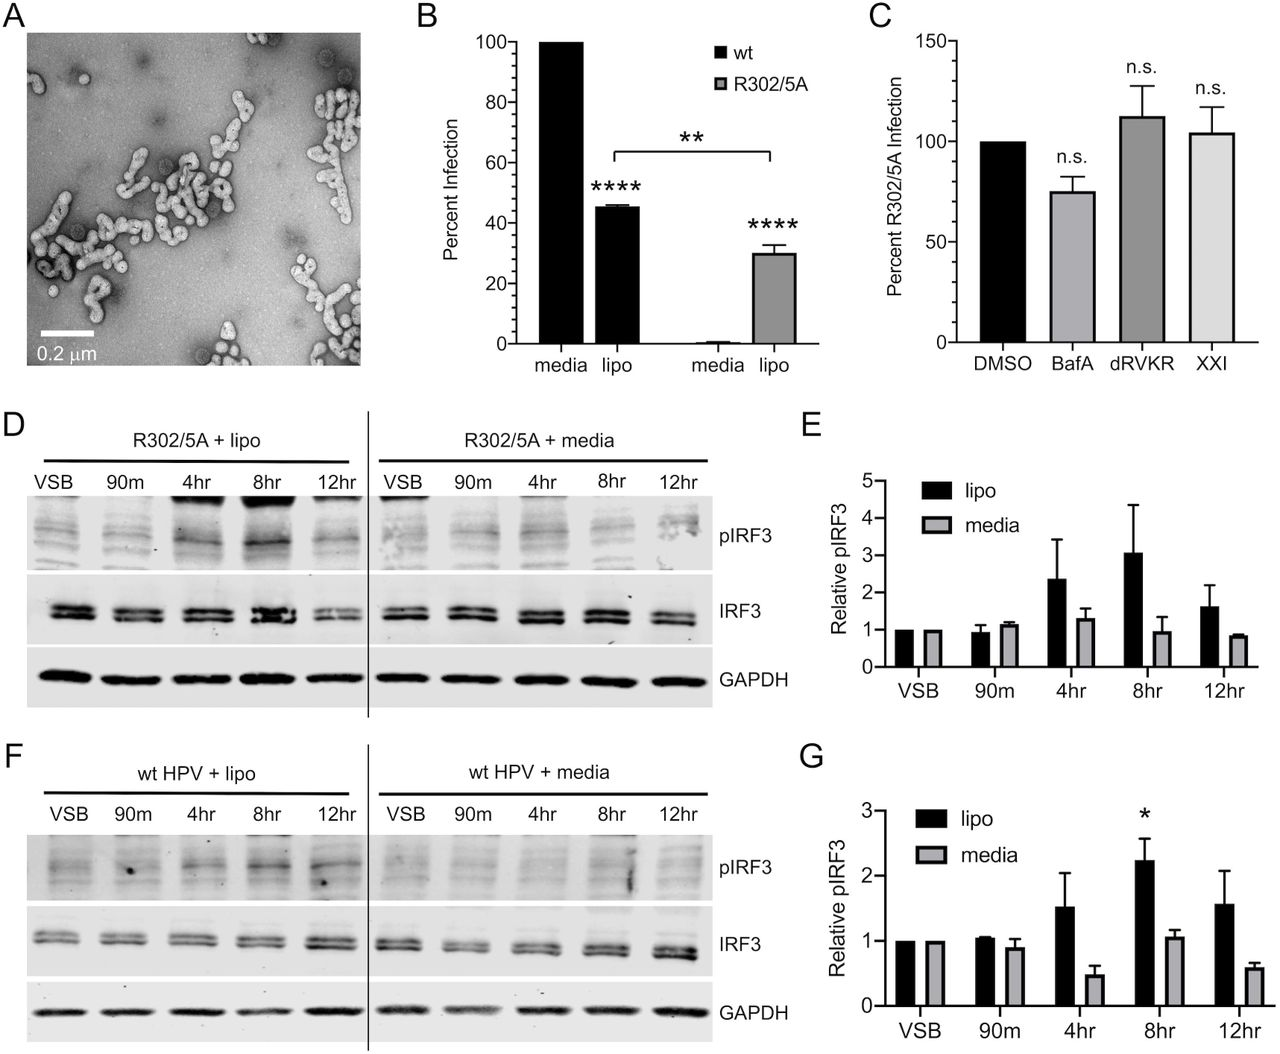 Bypassing HPV's Natural Trafficking Pathway Activates cGAS/STING Addition of cationic lipids during infection with translocation-deficient R302/5A mutant HPV16 restores infectivity and allows for cGAS/STING sensing.  (A)  Electron micrograph of HPV16 complexed with the cationic lipid Lipofectamine 2000.  (B)  HaCaTs were infected with 2e8 vge/well of wildtype or R302/5A virion +/- cationic lipid (lipo) for 4 hr and infection was measured by luciferase assay 24h post-infection. While naturally non-infectious, addition of cationic lipids restored infectivity of the R302/5A mutant to levels nearly comparable to those of wildtype HPV16. Statistics calculated by one-way ANOVA ( P